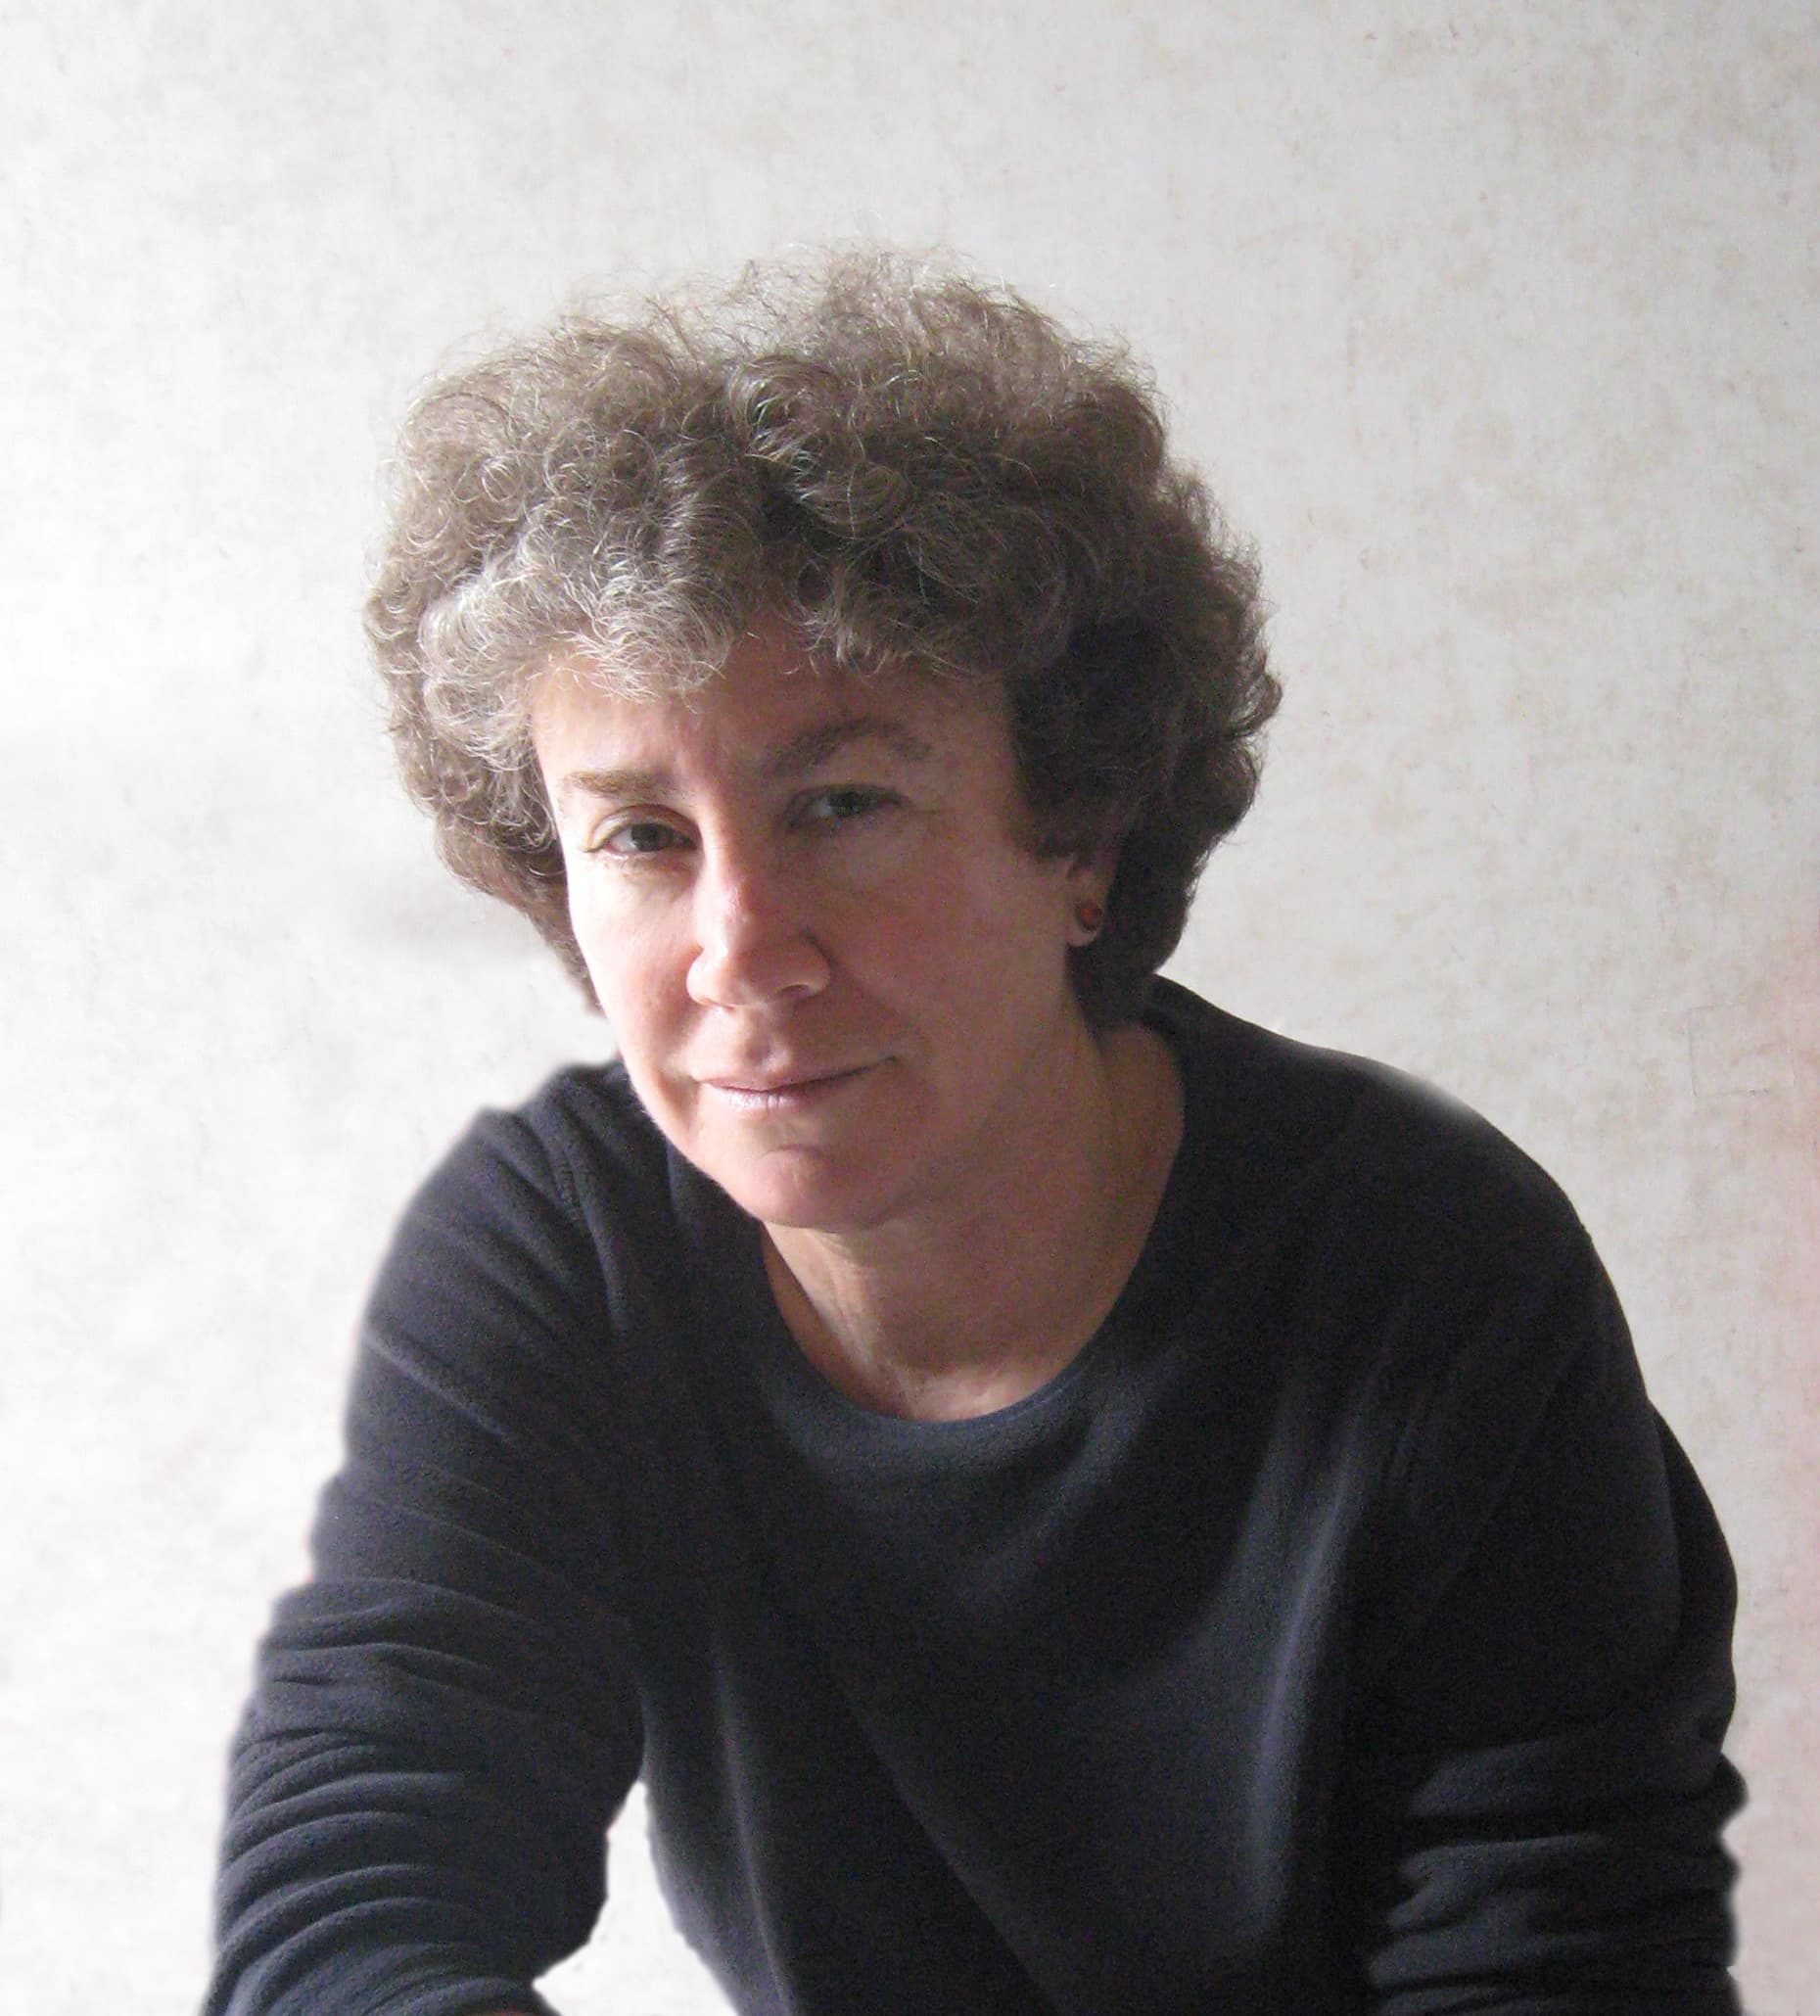 Author and Creative Writing Professor Jill Ciment